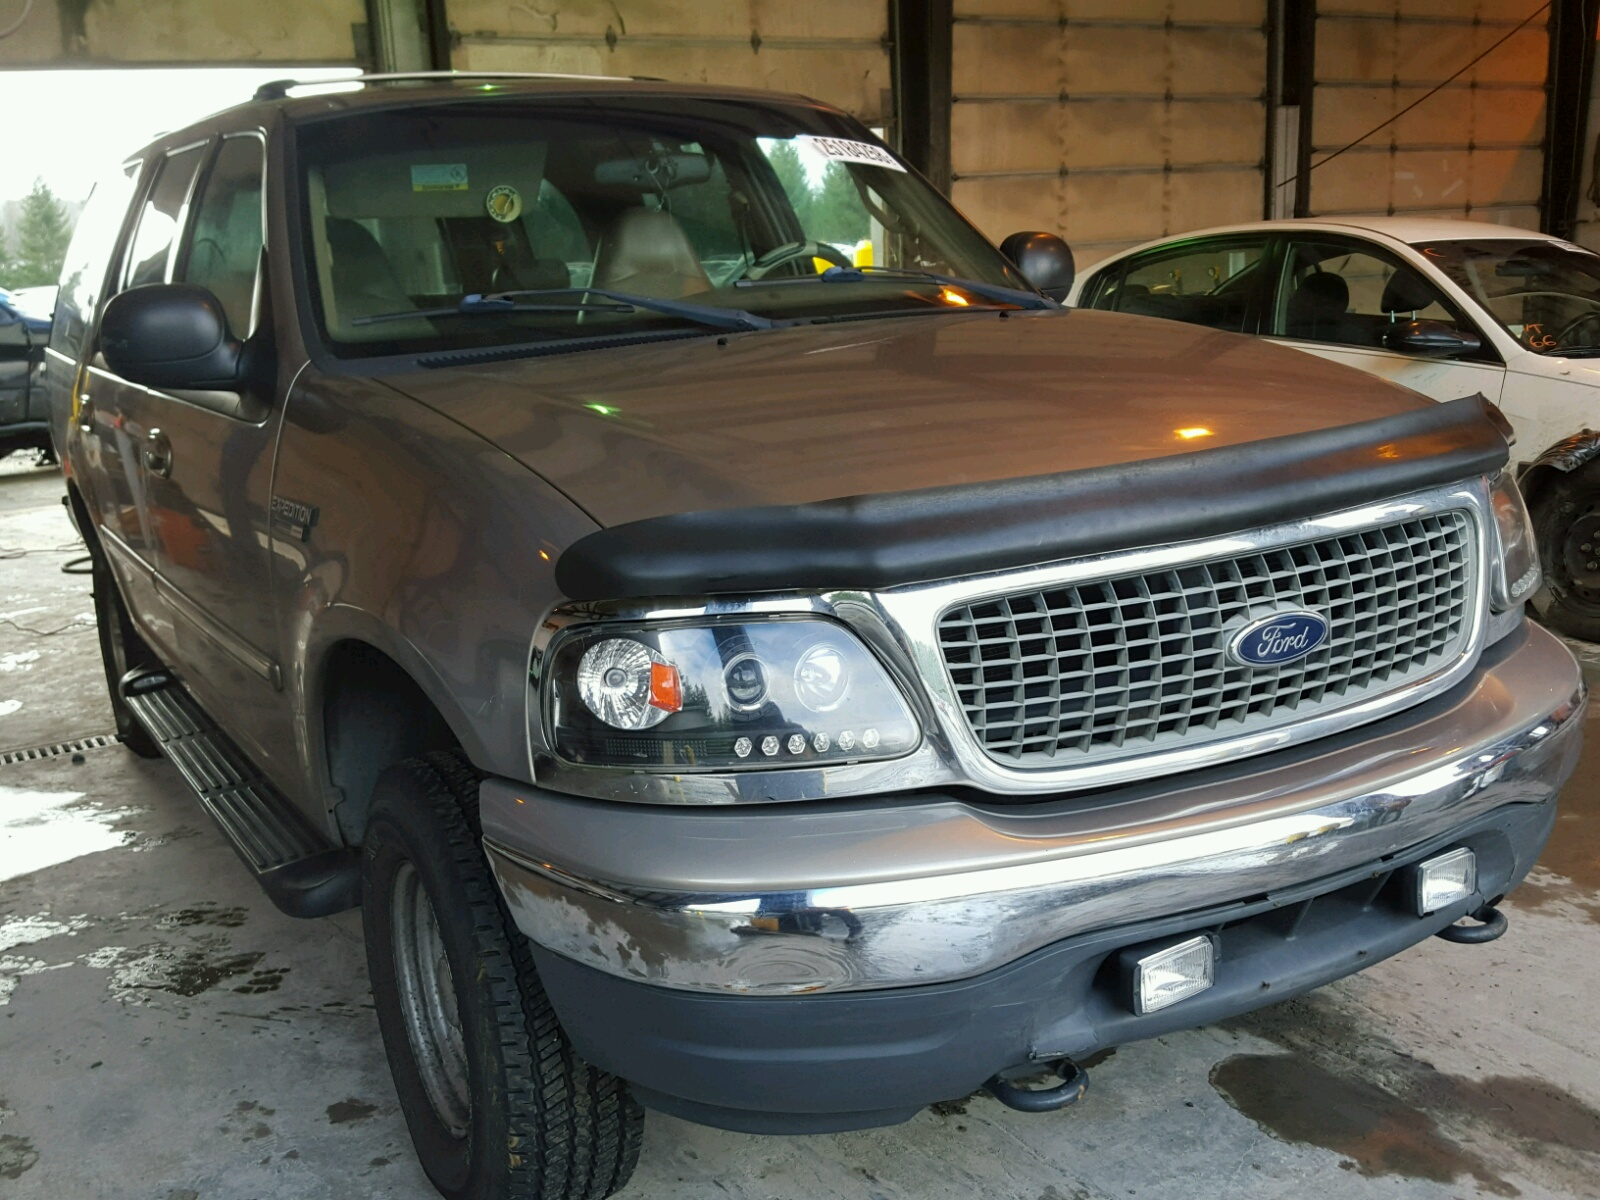 Auto Auction Ended on VIN 1FMRU16W31LA 2001 FORD EXPEDITION in